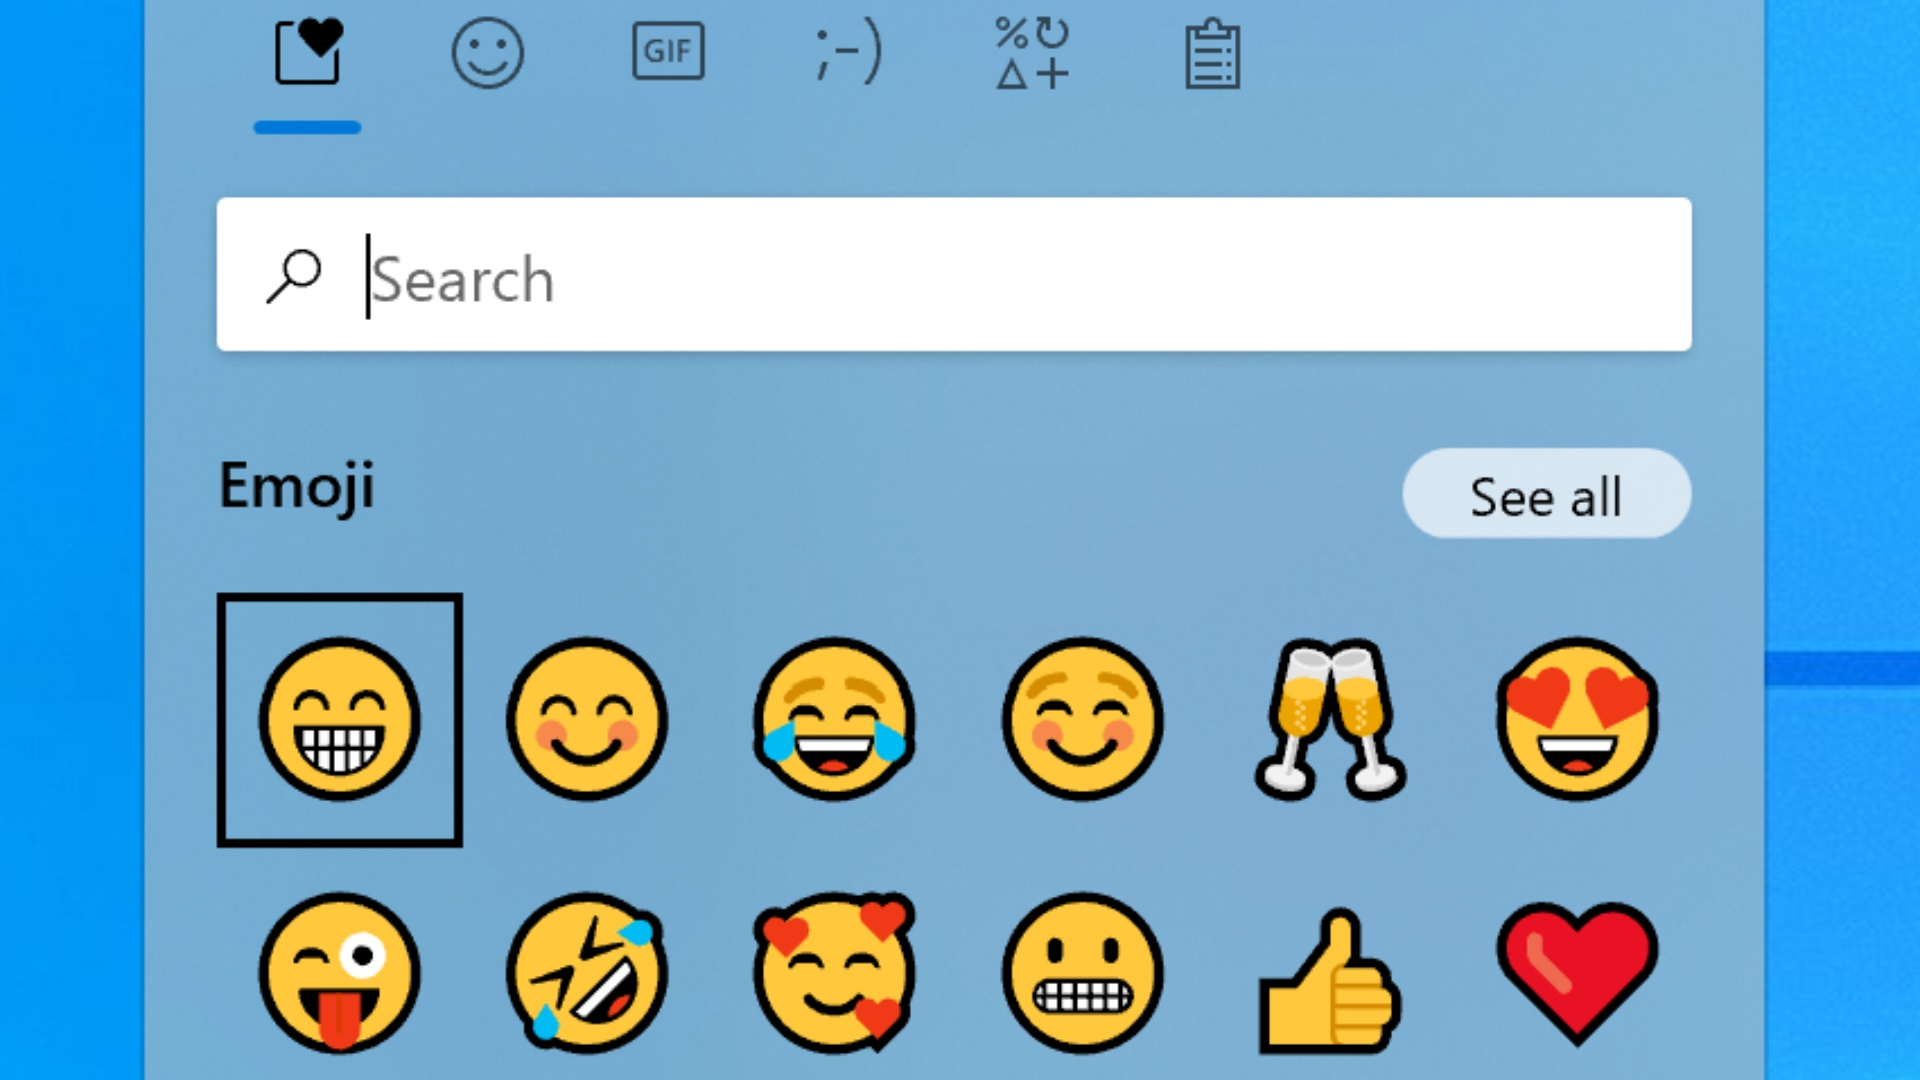 Microsoft Upgrades Window 10's Touch Keyboard With Voice Typing, Emojis, And More